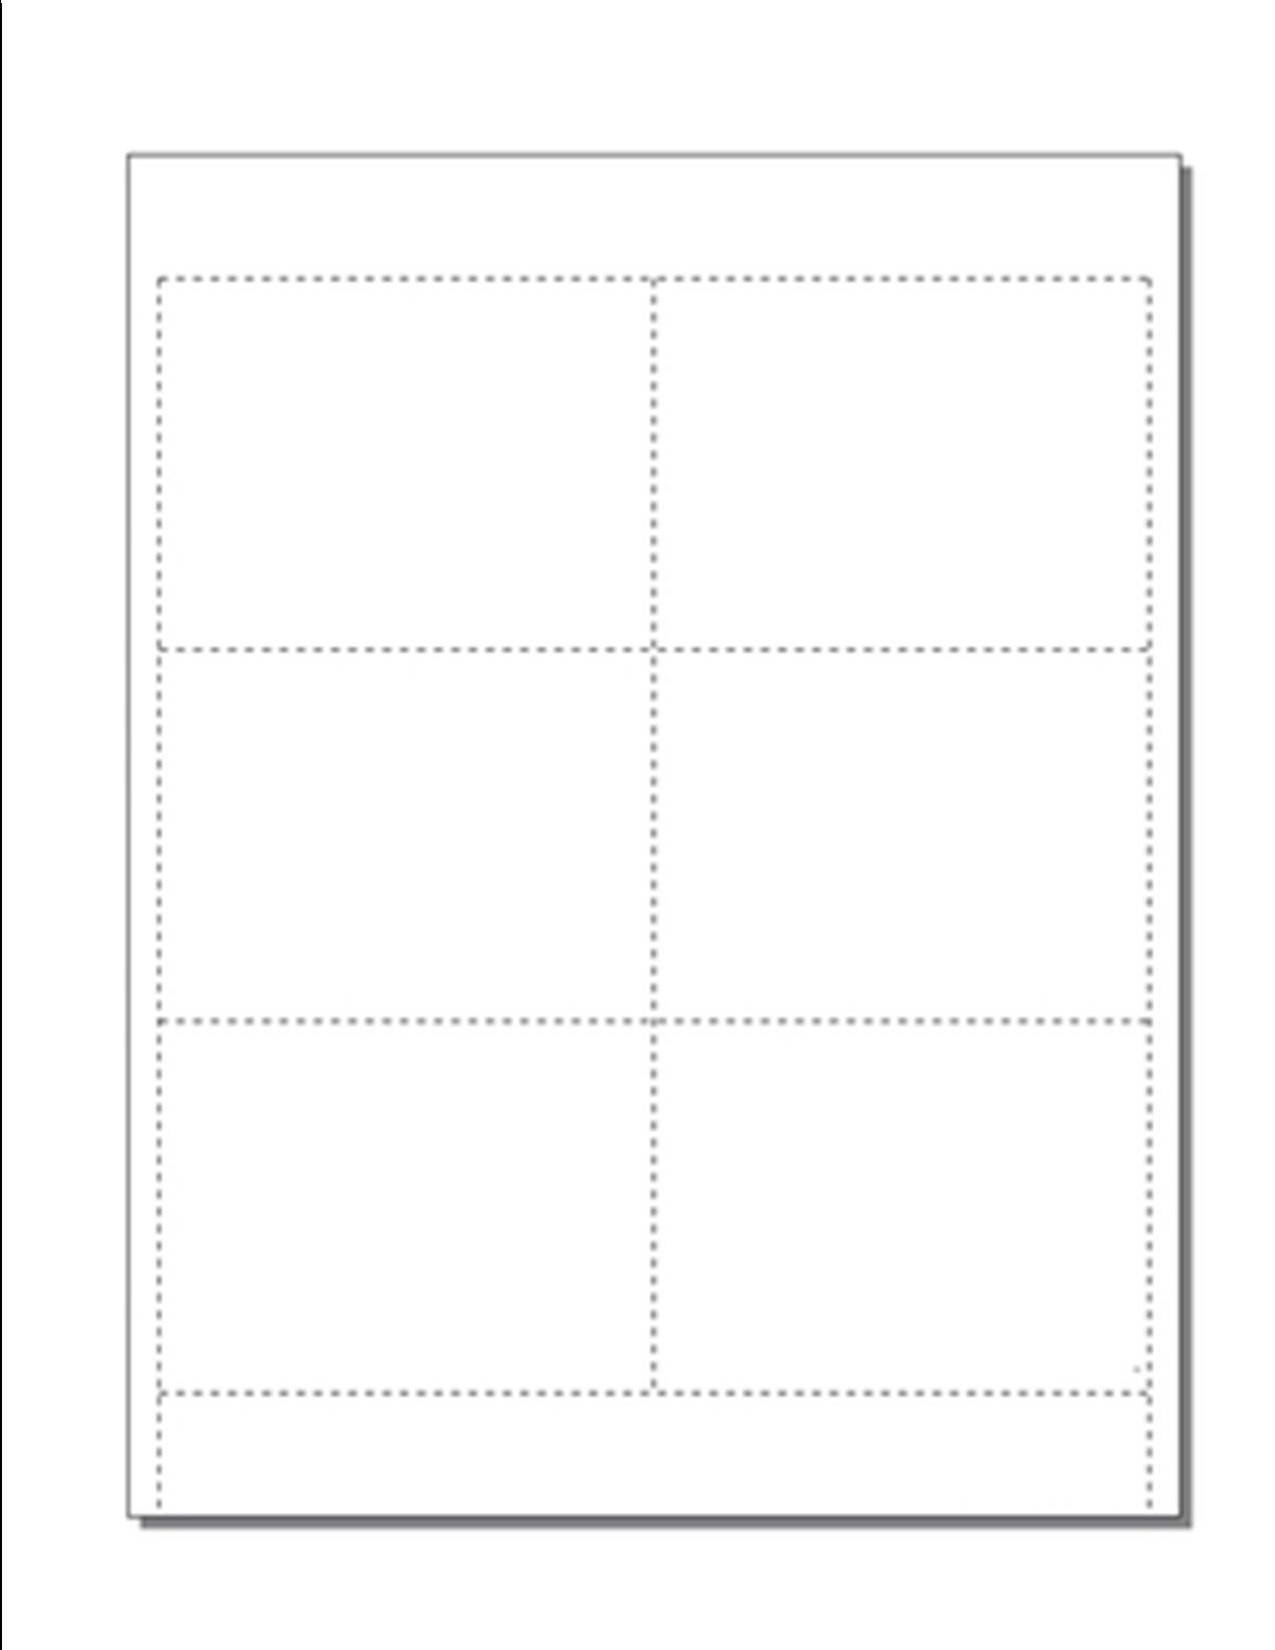 Blank Name Badge Inserts, Print-Ready on 8.5'' x 11'', 67-lb White Vellum, 6 Badges Per Sheet (4'' x 3'') - 100 Sheets